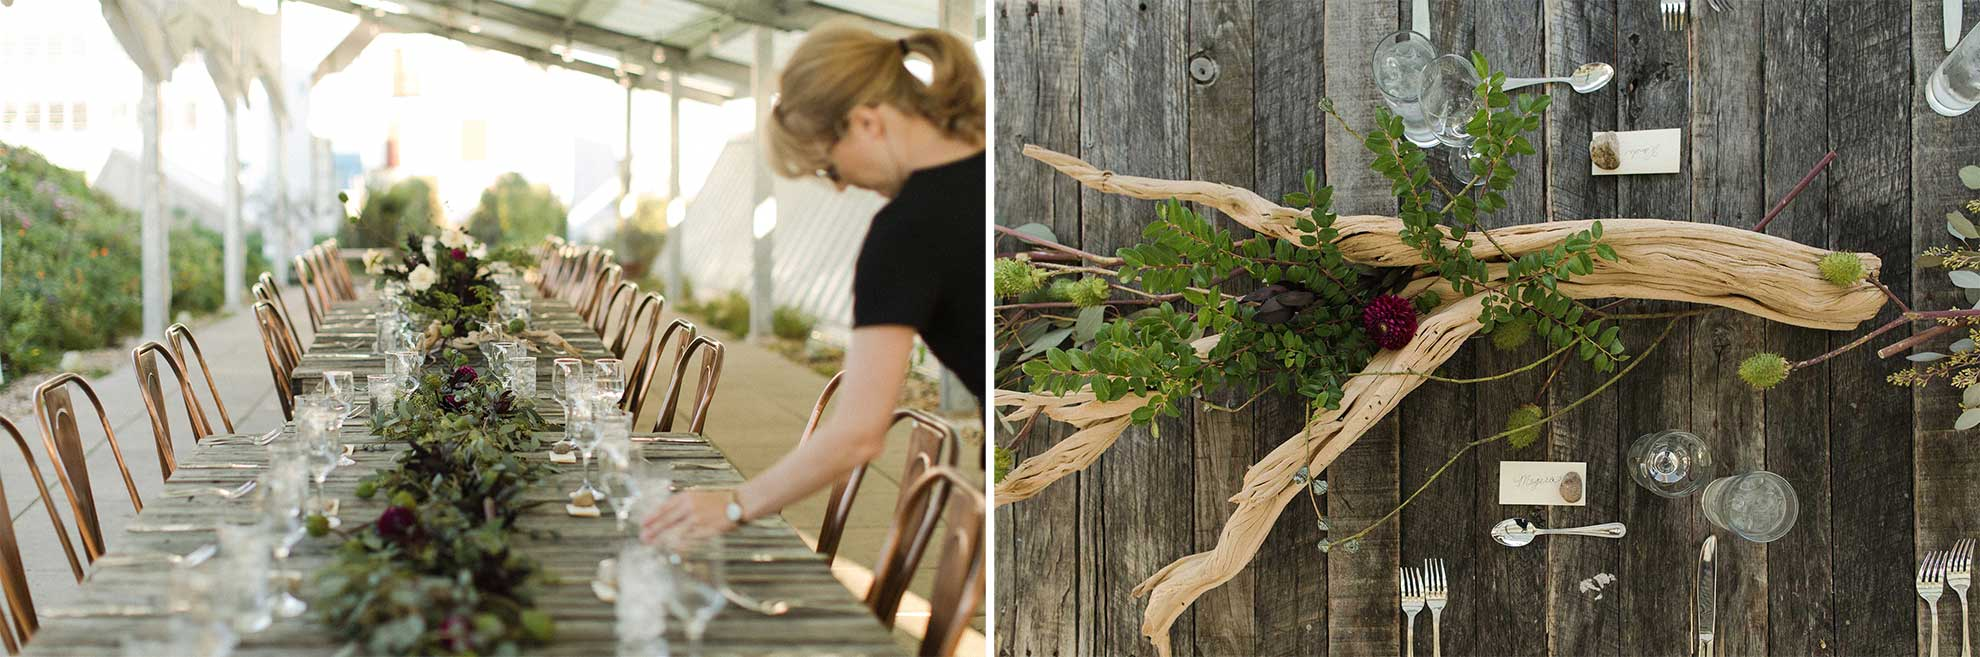 On the left, an elegant table set for dinner. On the right, a driftwood centerpiece alongside a place setting.